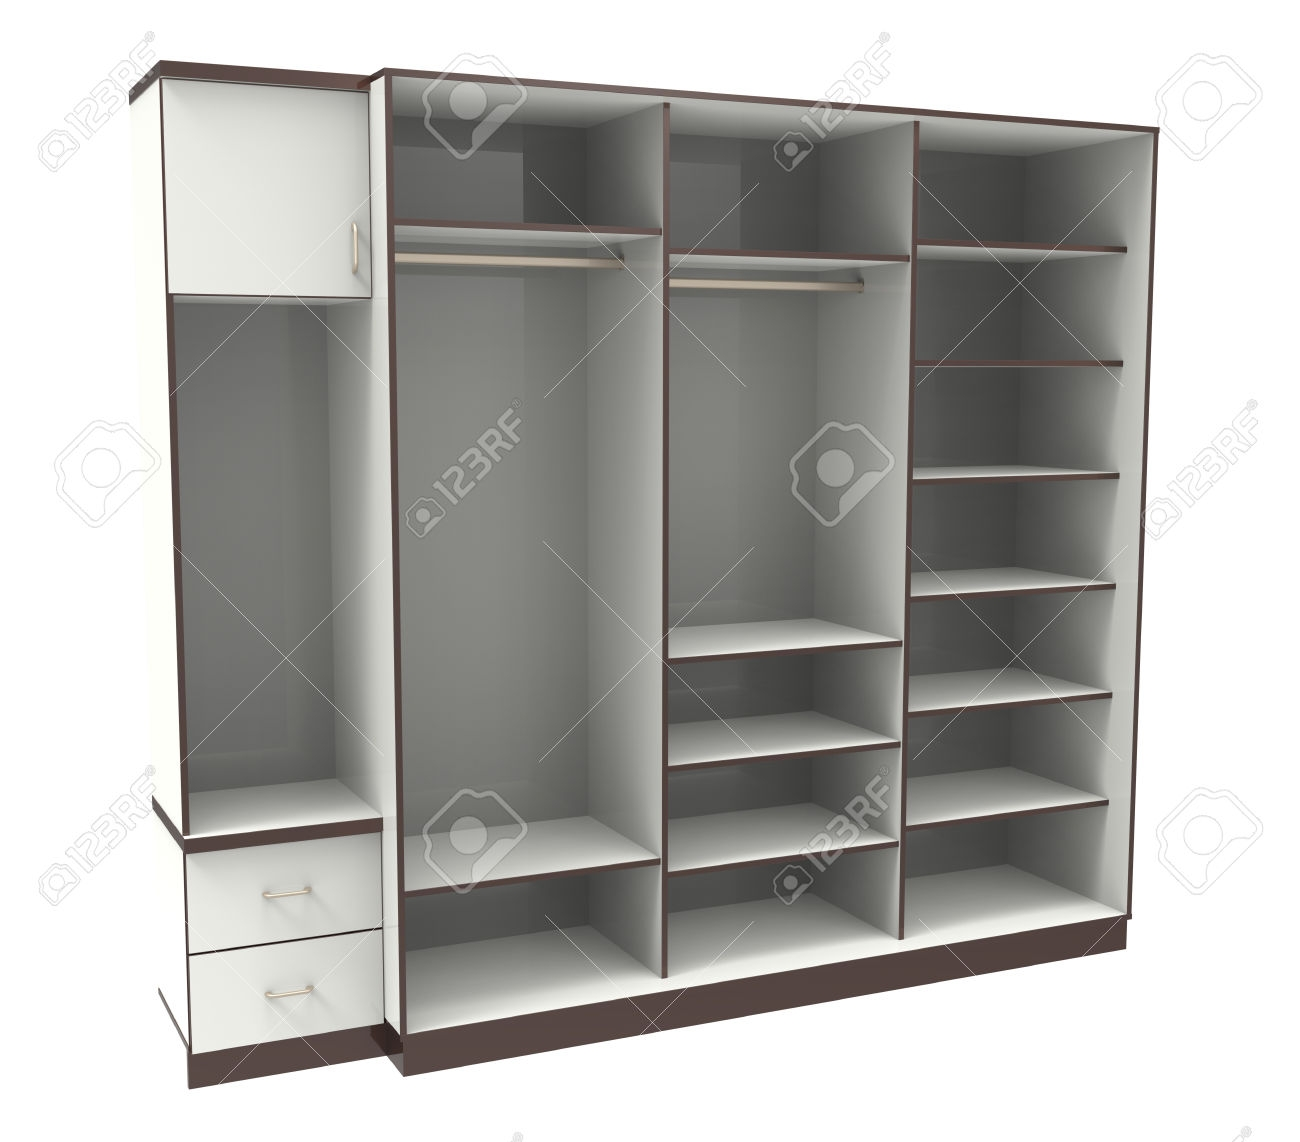 Wardrobe With Shelves On A White Stock Photo Picture And Royalty Pertaining To Wardrobe With Shelves (View 13 of 25)